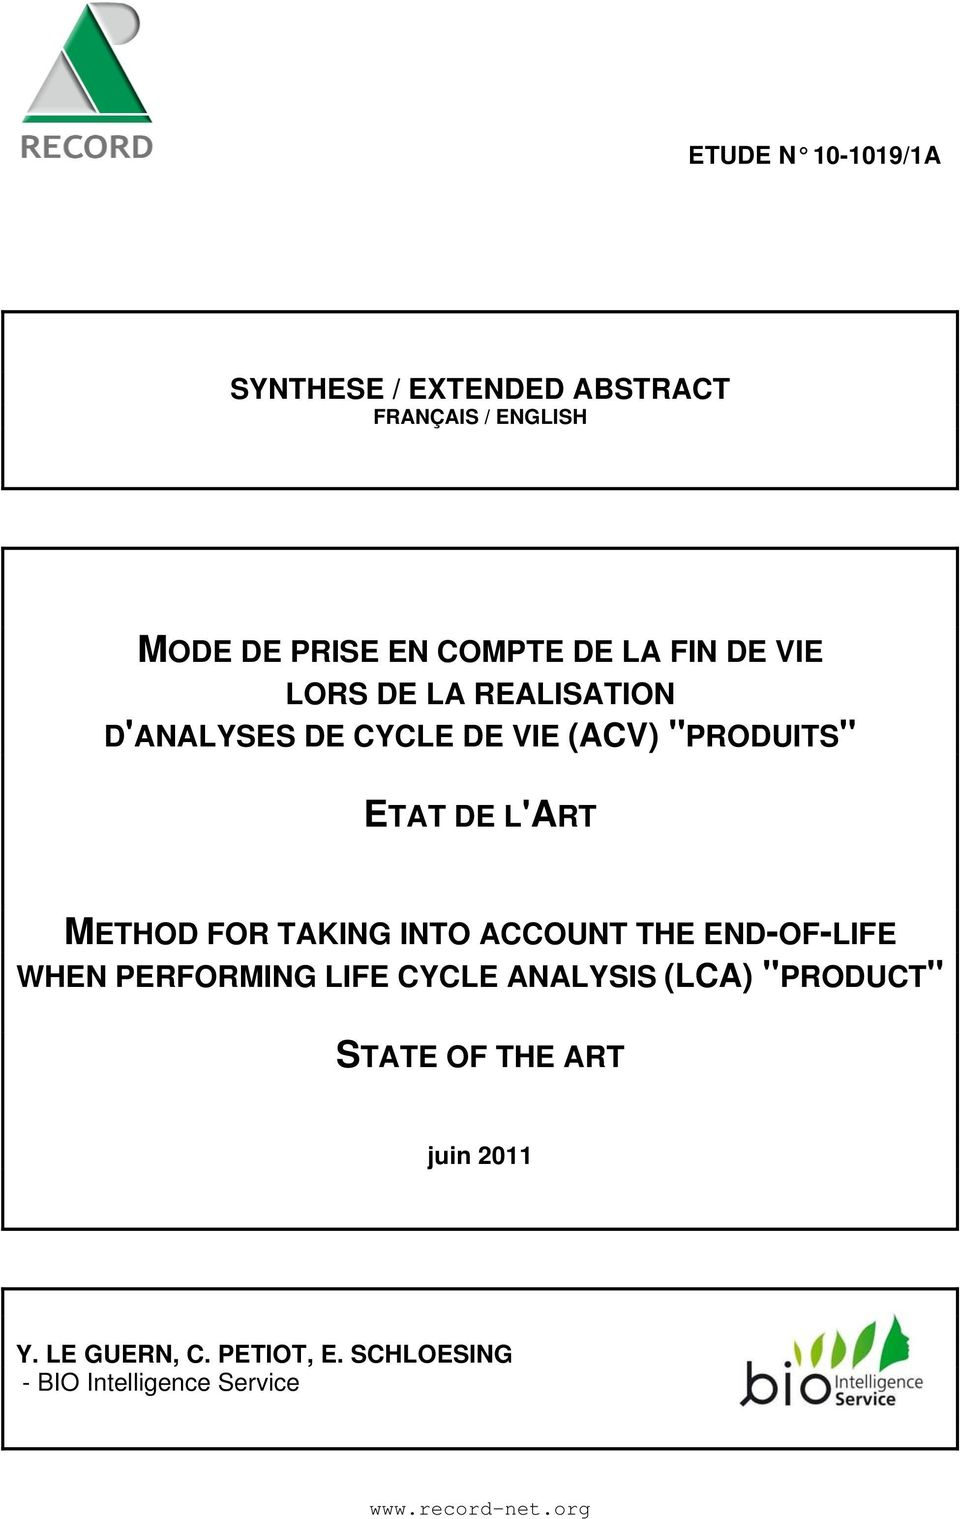 "FOR TAKING INTO ACCOUNT THE END-OF-LIFE WHEN PERFORMING LIFE CYCLE ANALYSIS (LCA) ""PRODUCT"" STATE"